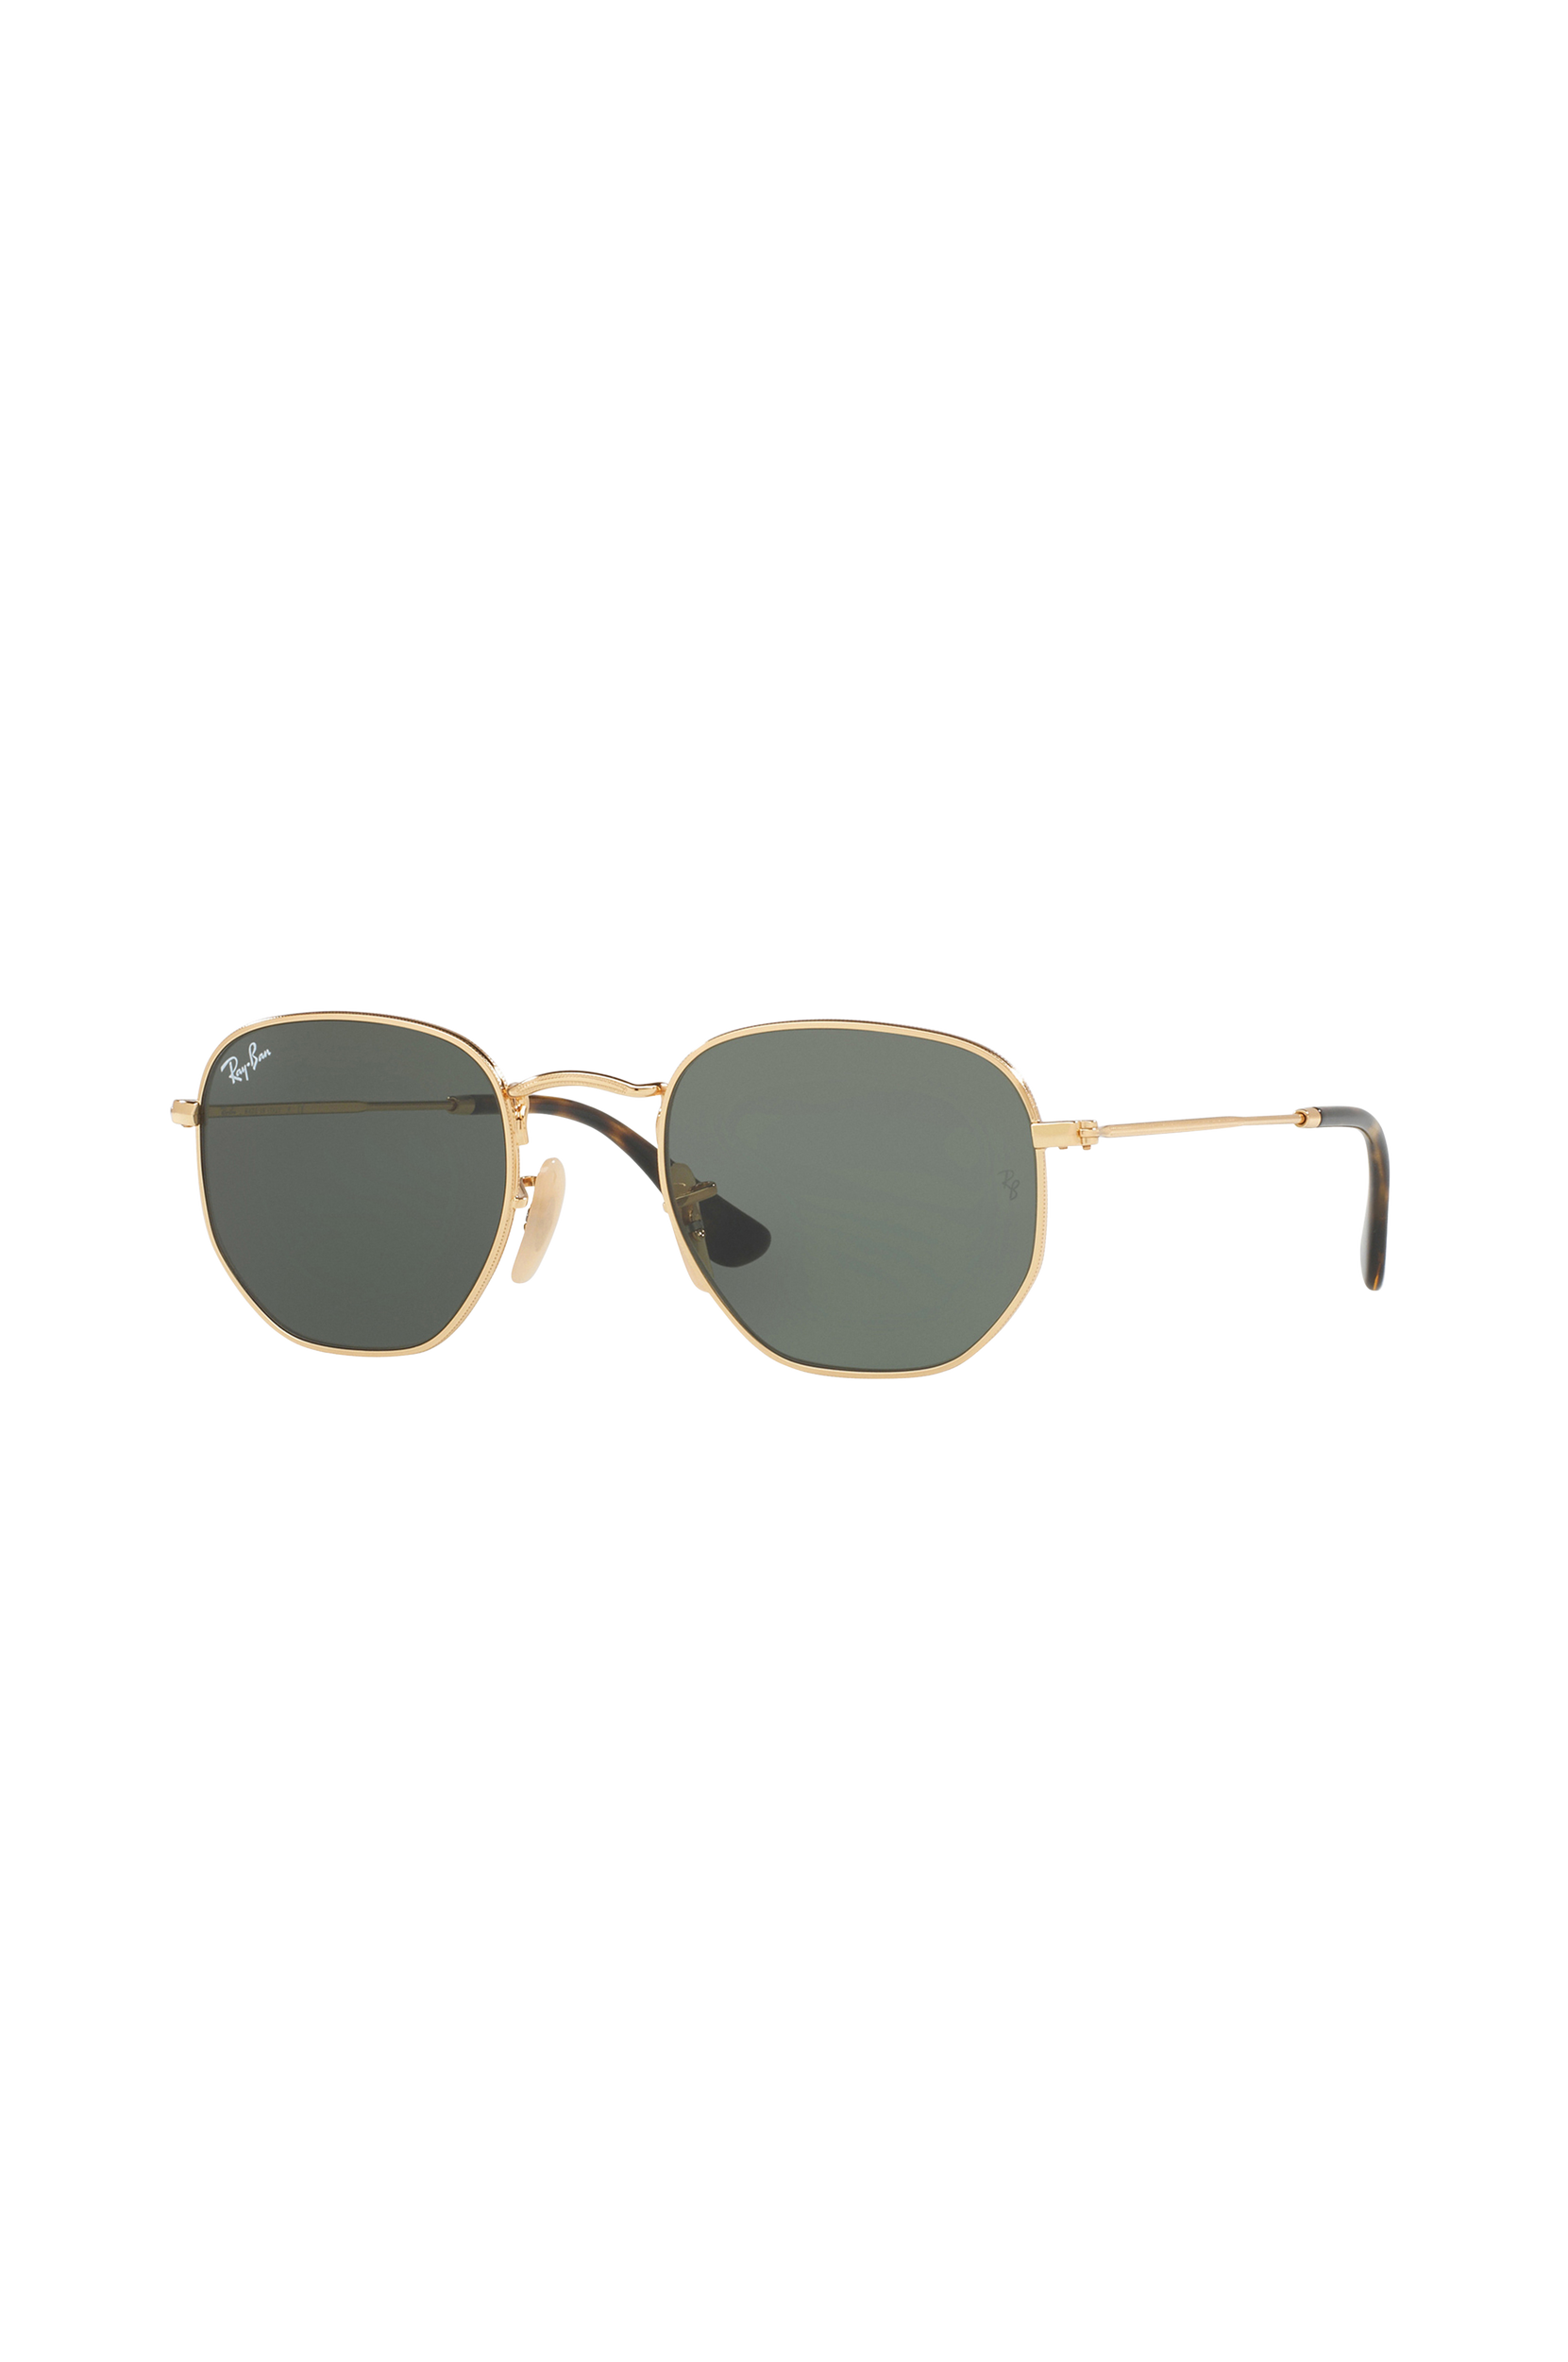 Solbriller Hexagonal Rn3548n Gold Ray Ban Accessories til Kvinder i